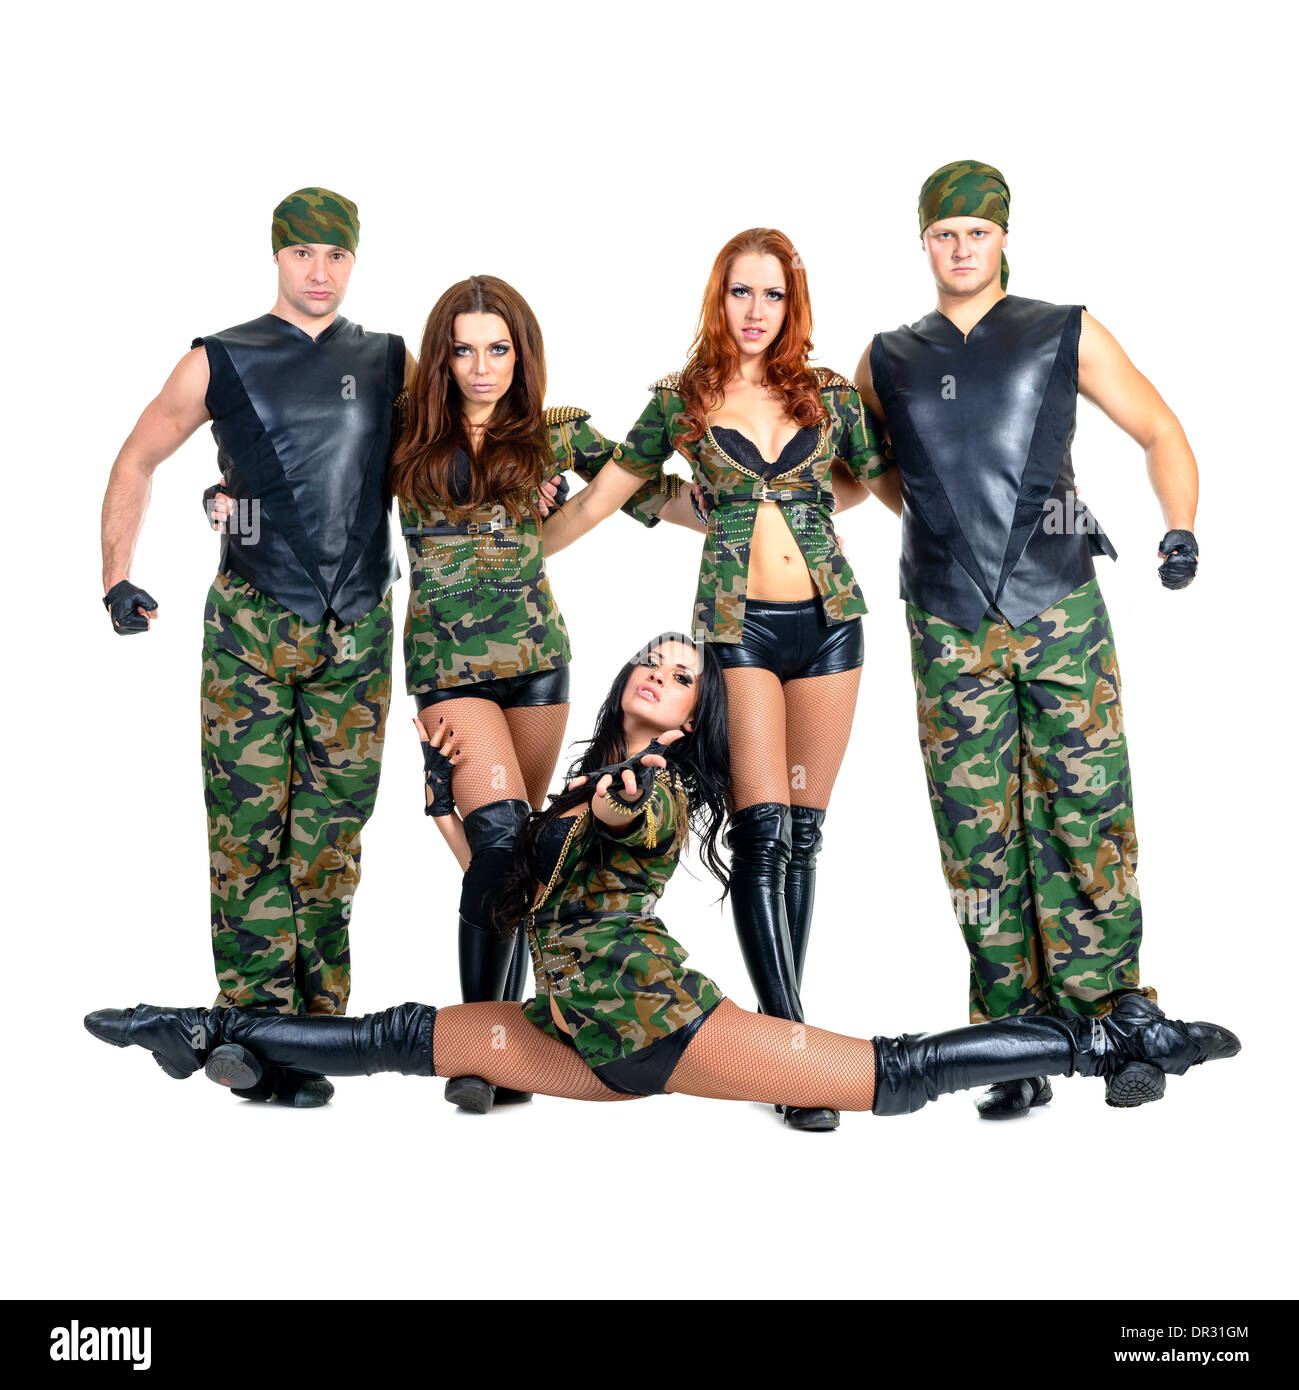 dde9ba2f2c15 military dancer team dressed in camouflage costumes Stock Photo ...